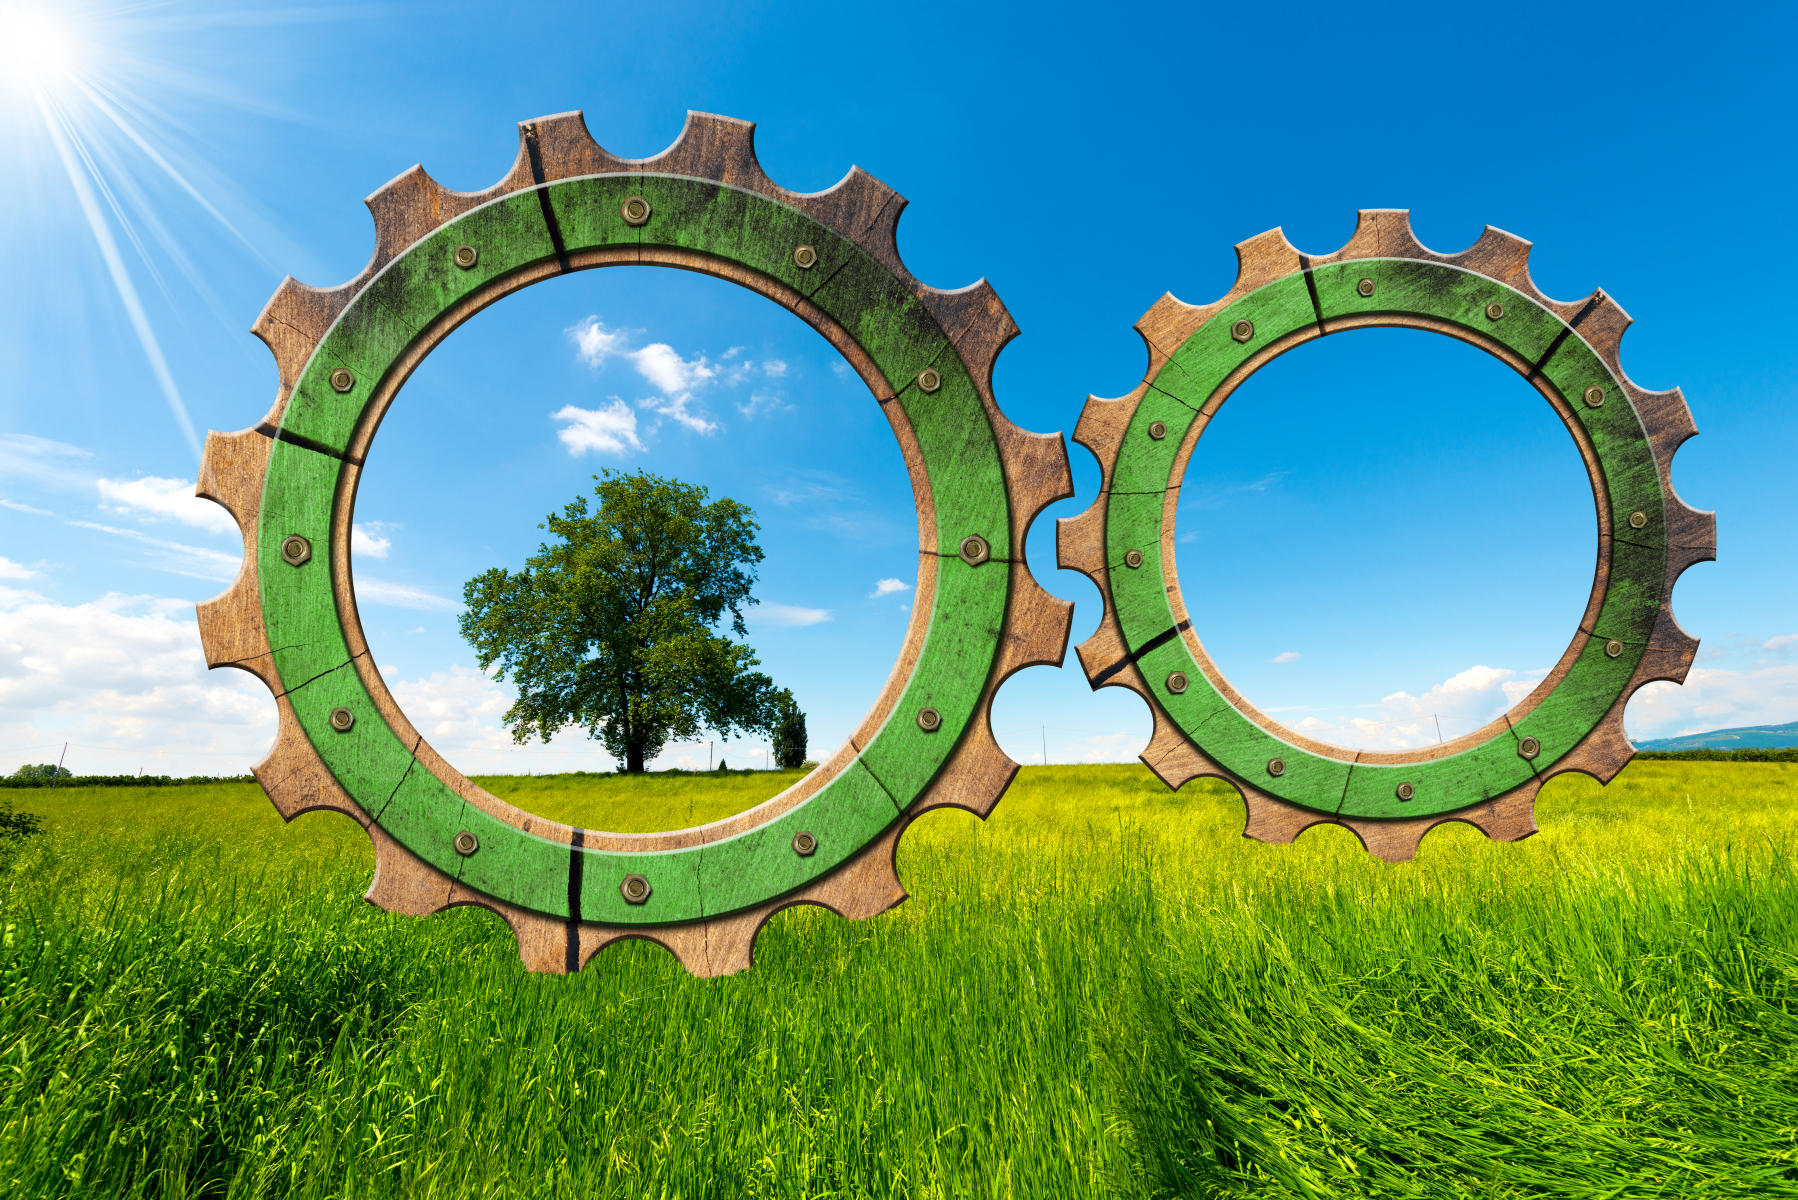 Green economy gears in countryside